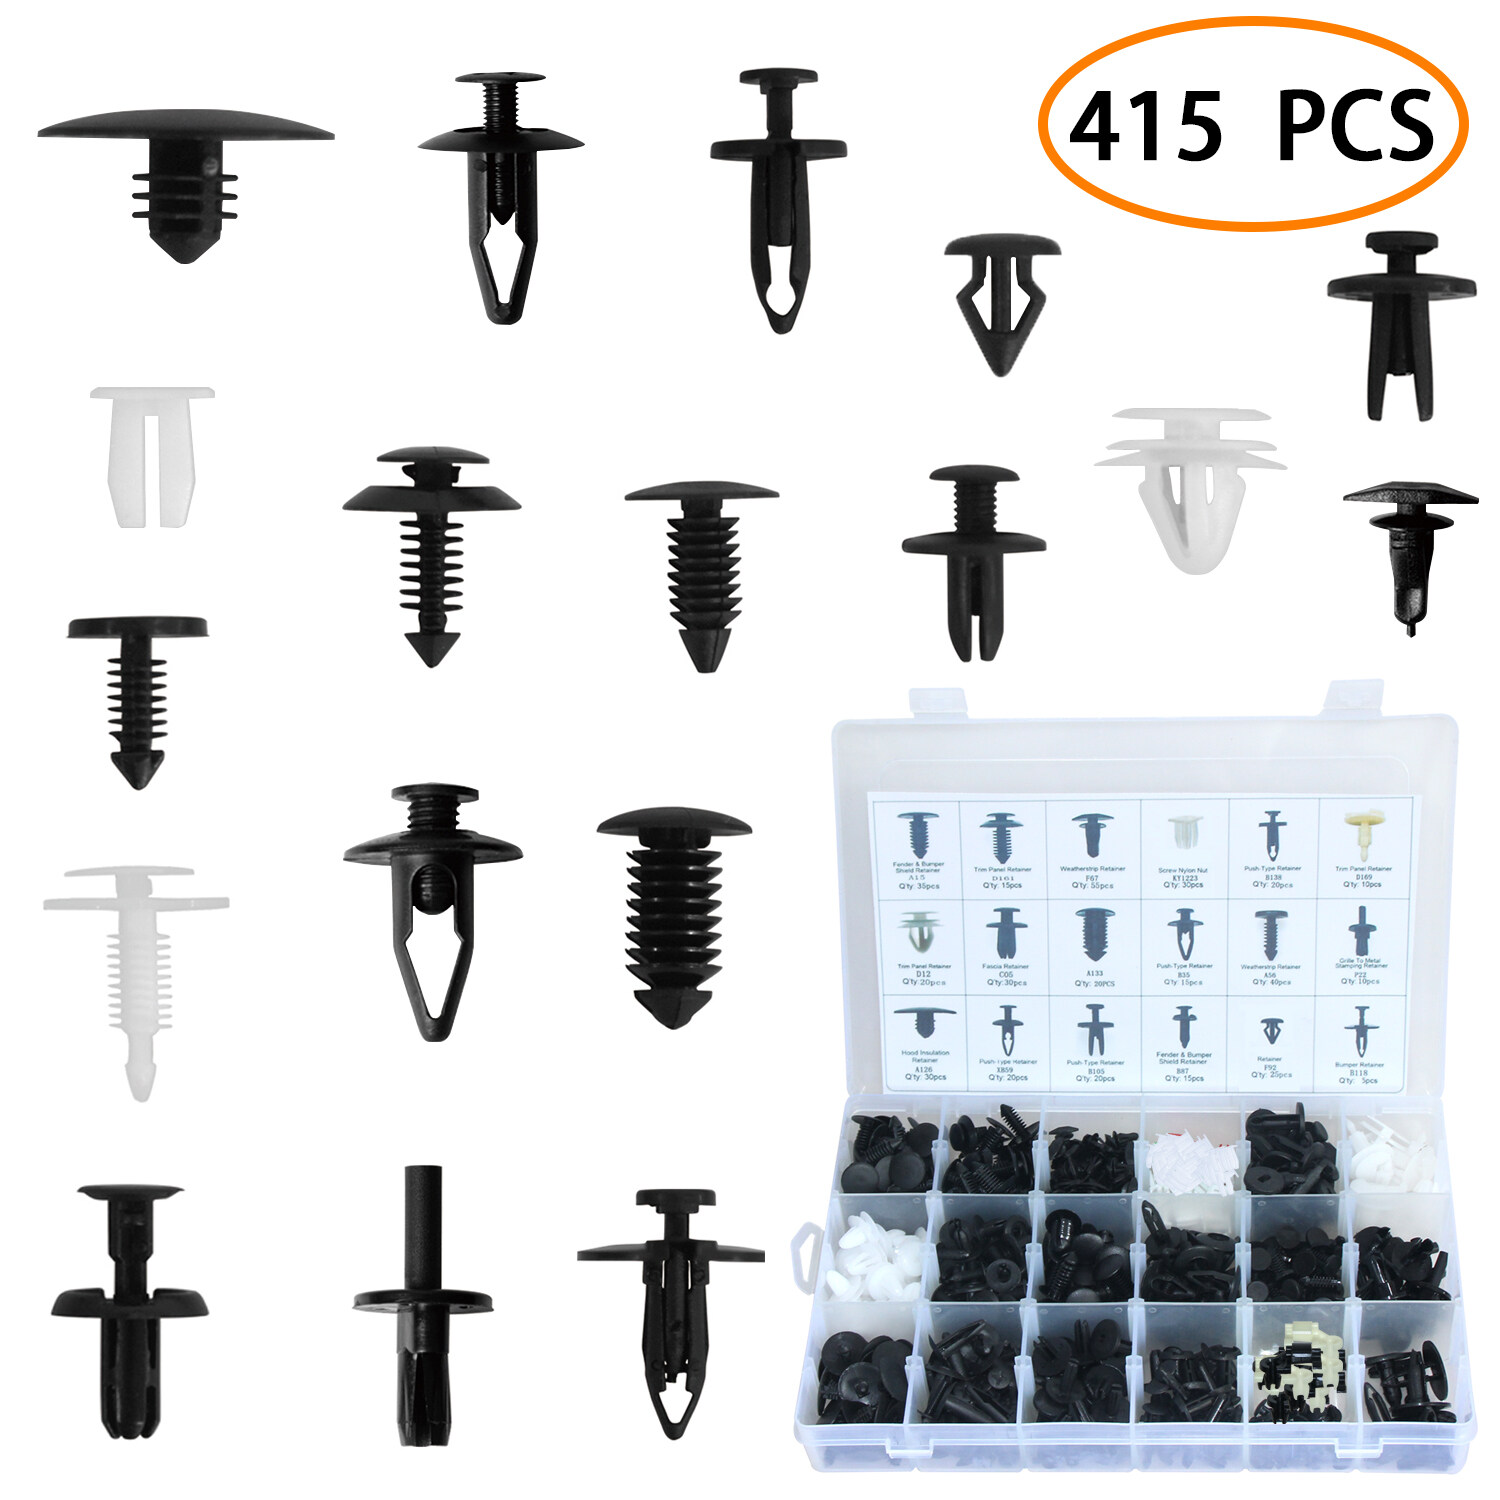 415 PCS Car Retainer Clips Auto Push Pin Rivet Clips Car Trim Panel Body Plastic Fastener Clips Kit With Fastener Remover 19 Most Popular Sizes For GM Ford Toyota Honda Chrysler With Plastic Storage Case 0